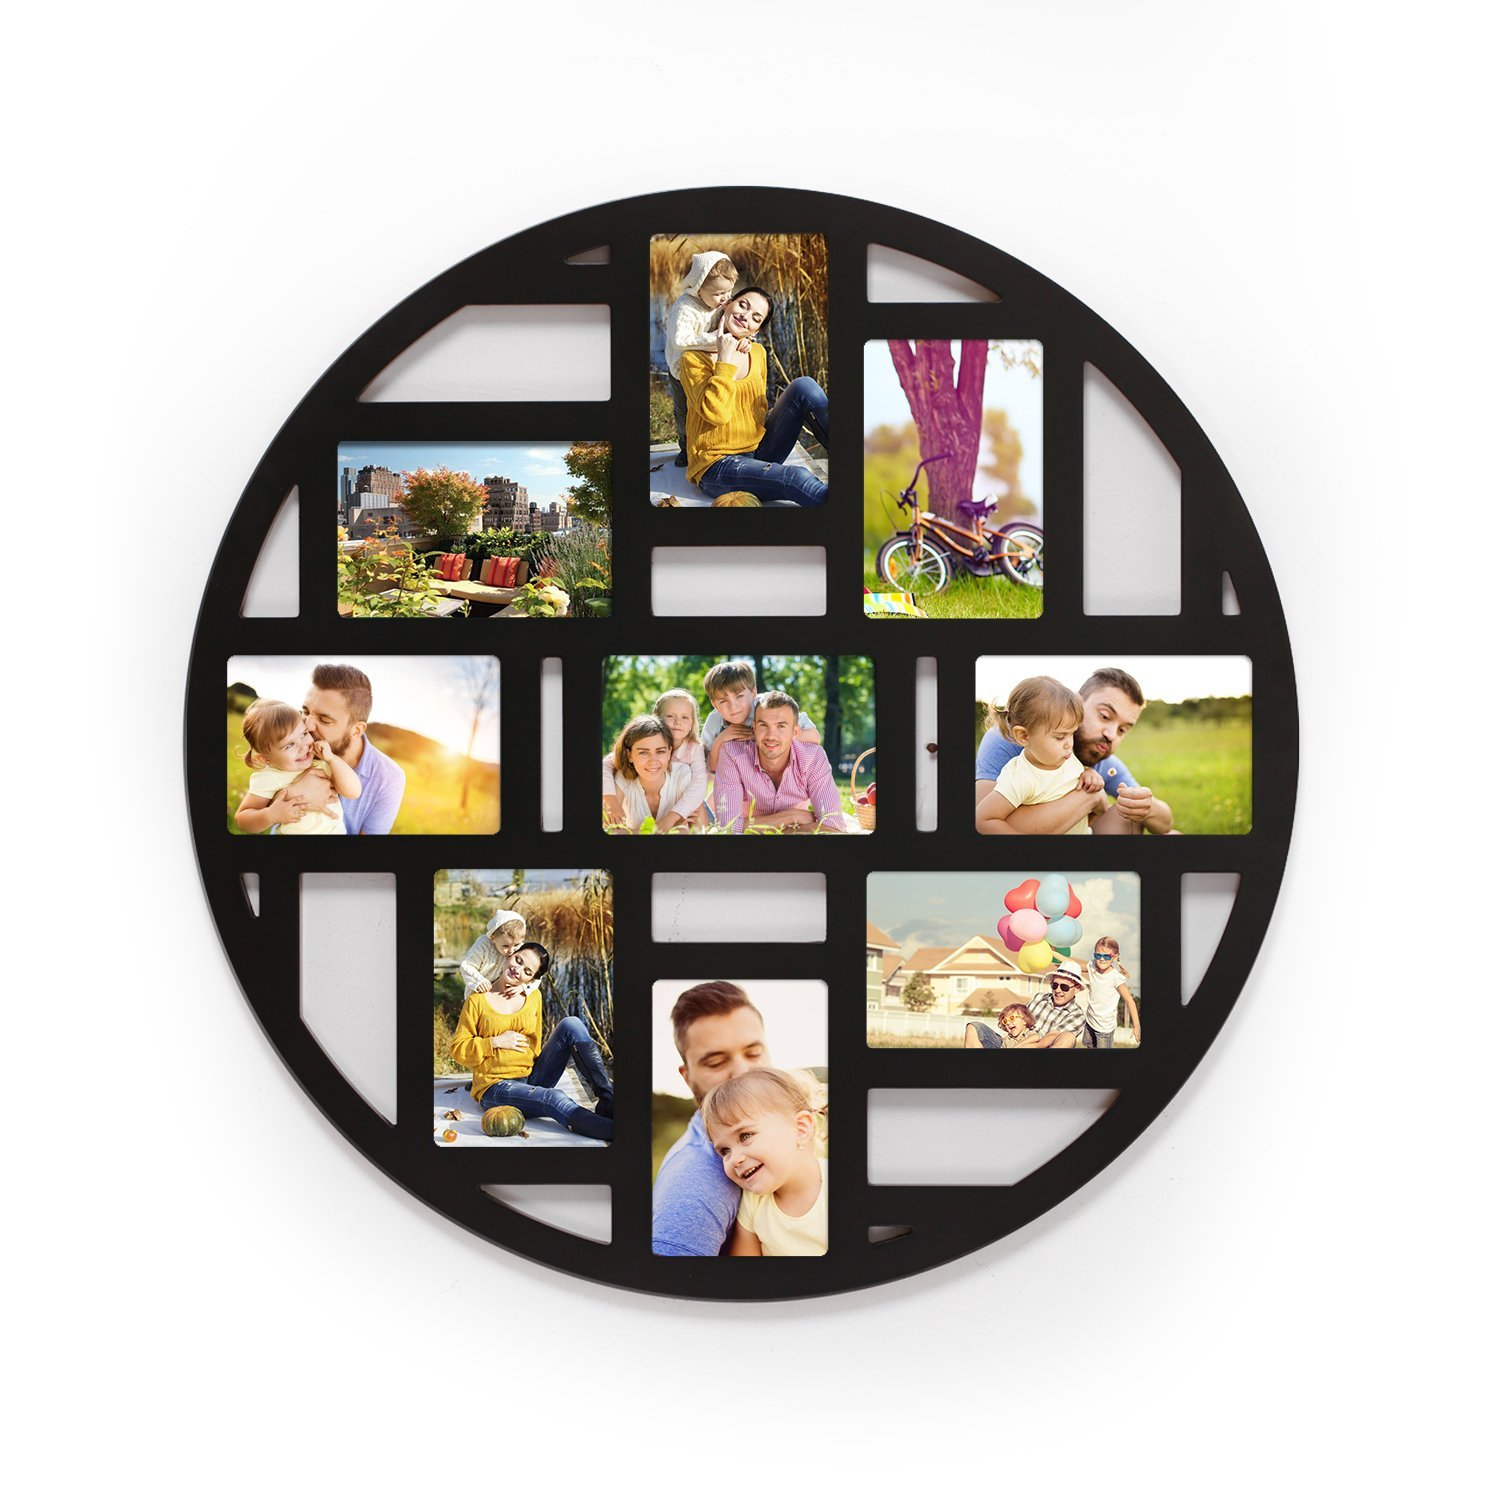 """Adeco Decorative Old China Themed Black Wood Round Circular Circle Wall Hanging Prints Artwork Picture Photo Collage Frame, 9 Divided Openings 4x6"""""""